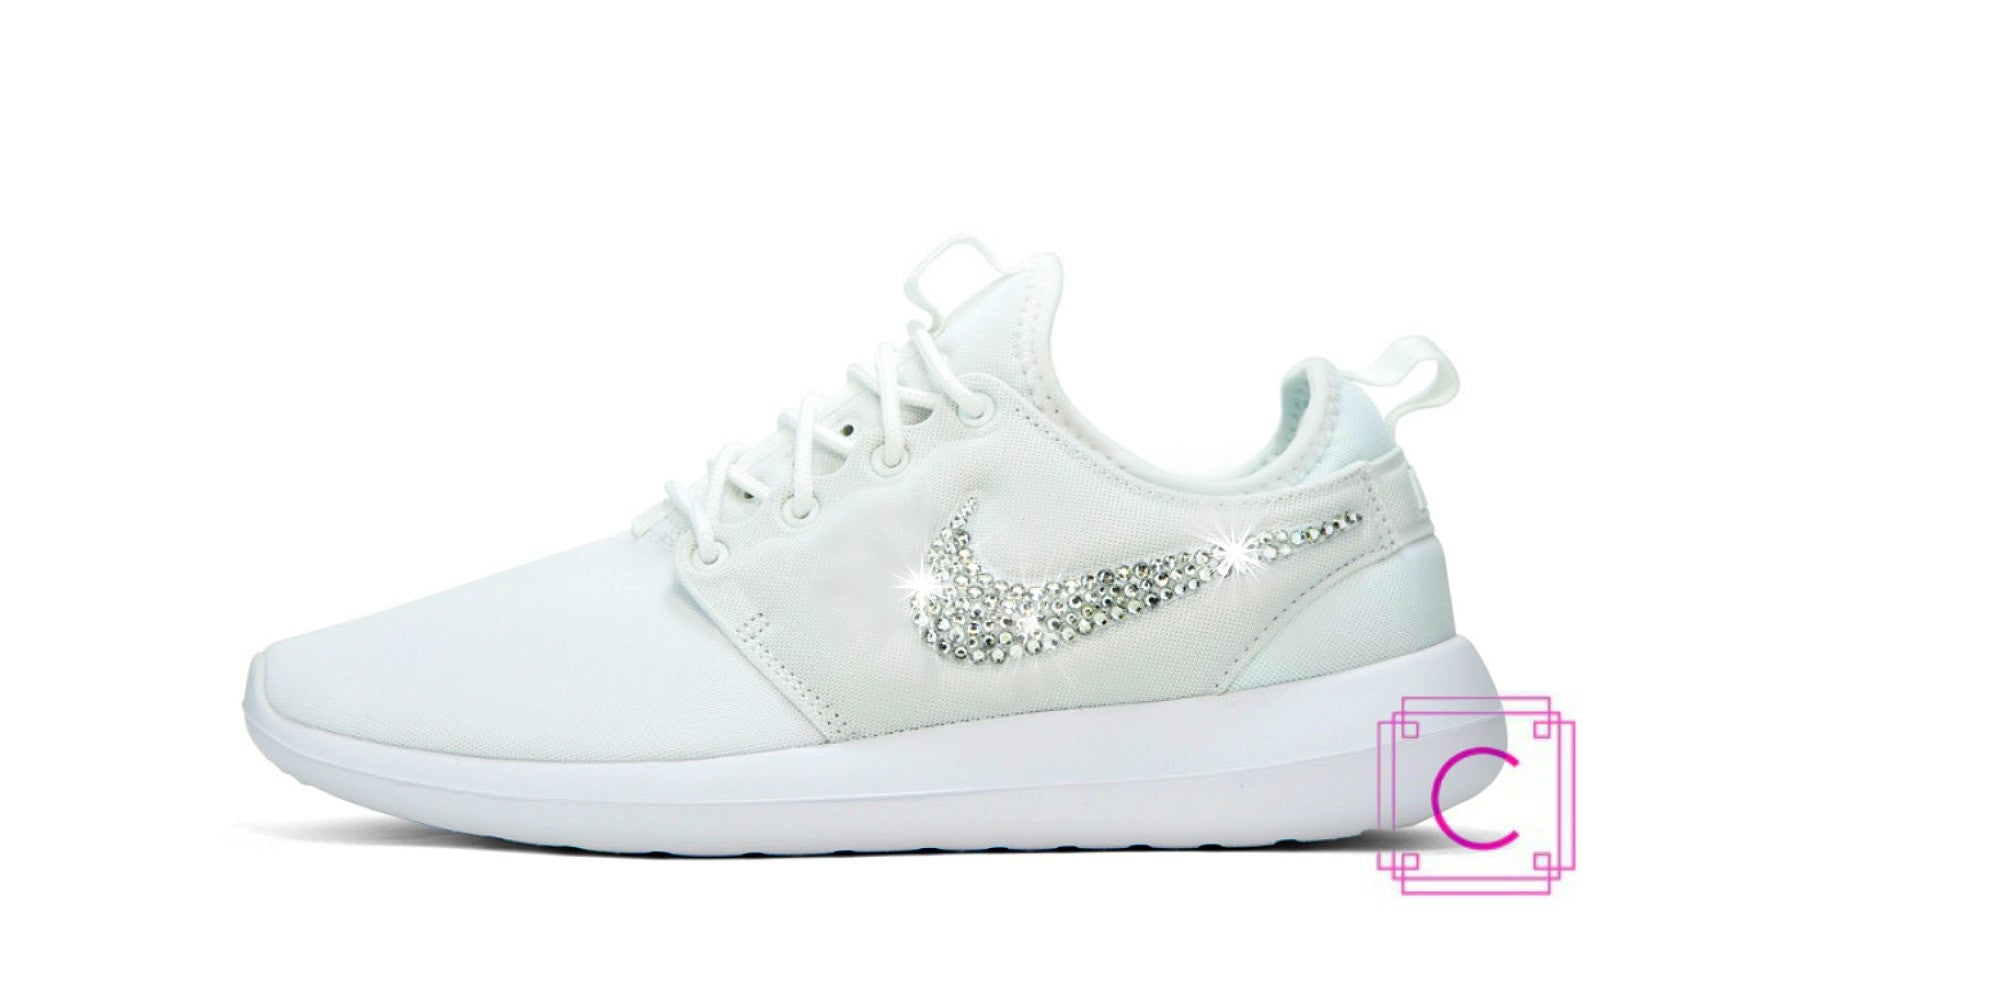 Women's Nike Roshe two White Premium in Light White w/Swarovski Crystals details - CRYSTAHHLED